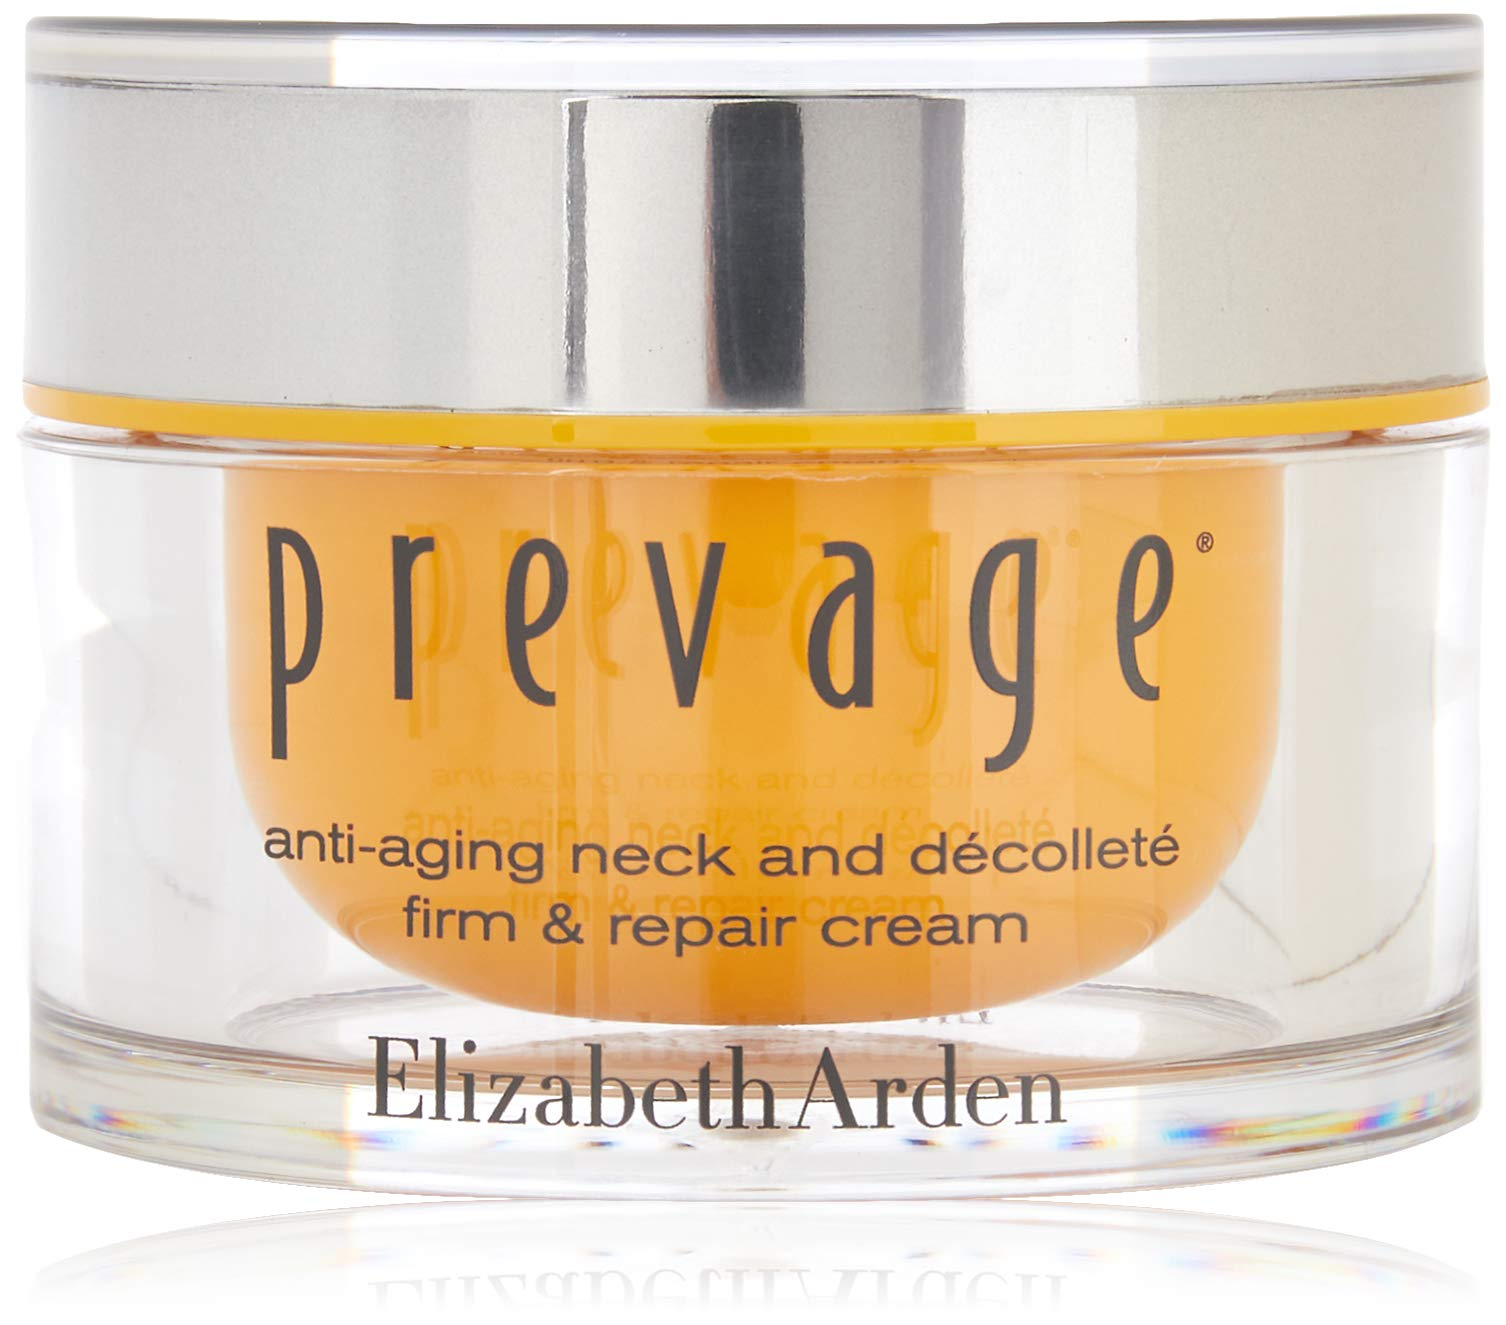 Elizabeth Arden Prevage Anti-Aging Neck and Décolleté Firm & Repair Cream, 1.7 oz.